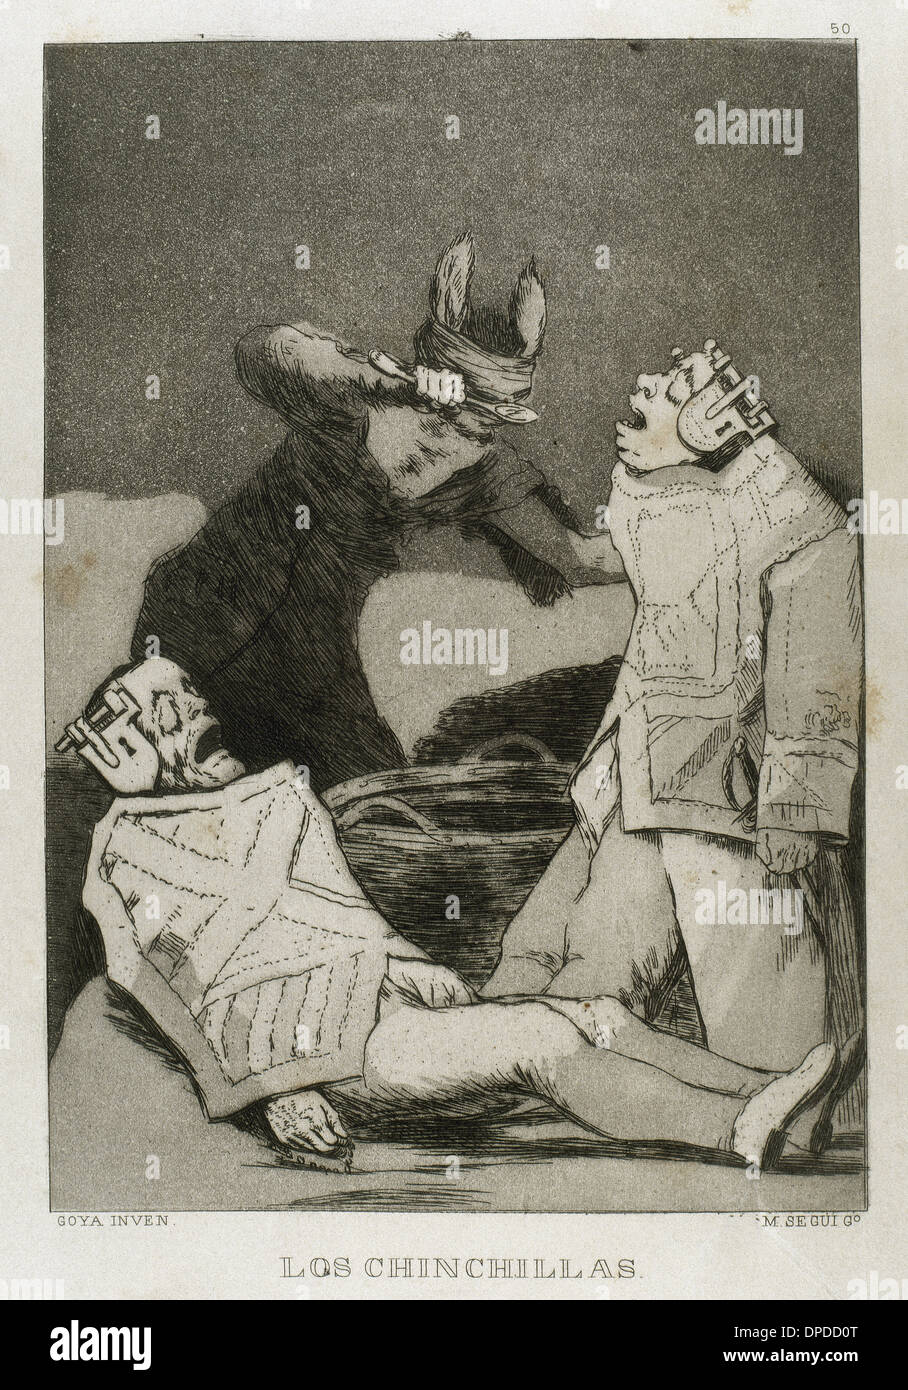 Goya (1746-1828). Spanish painter and printmaker. Los Caprichos. Los Chinchillas (The Chinchillas). Number 50. Aquatint. - Stock Image